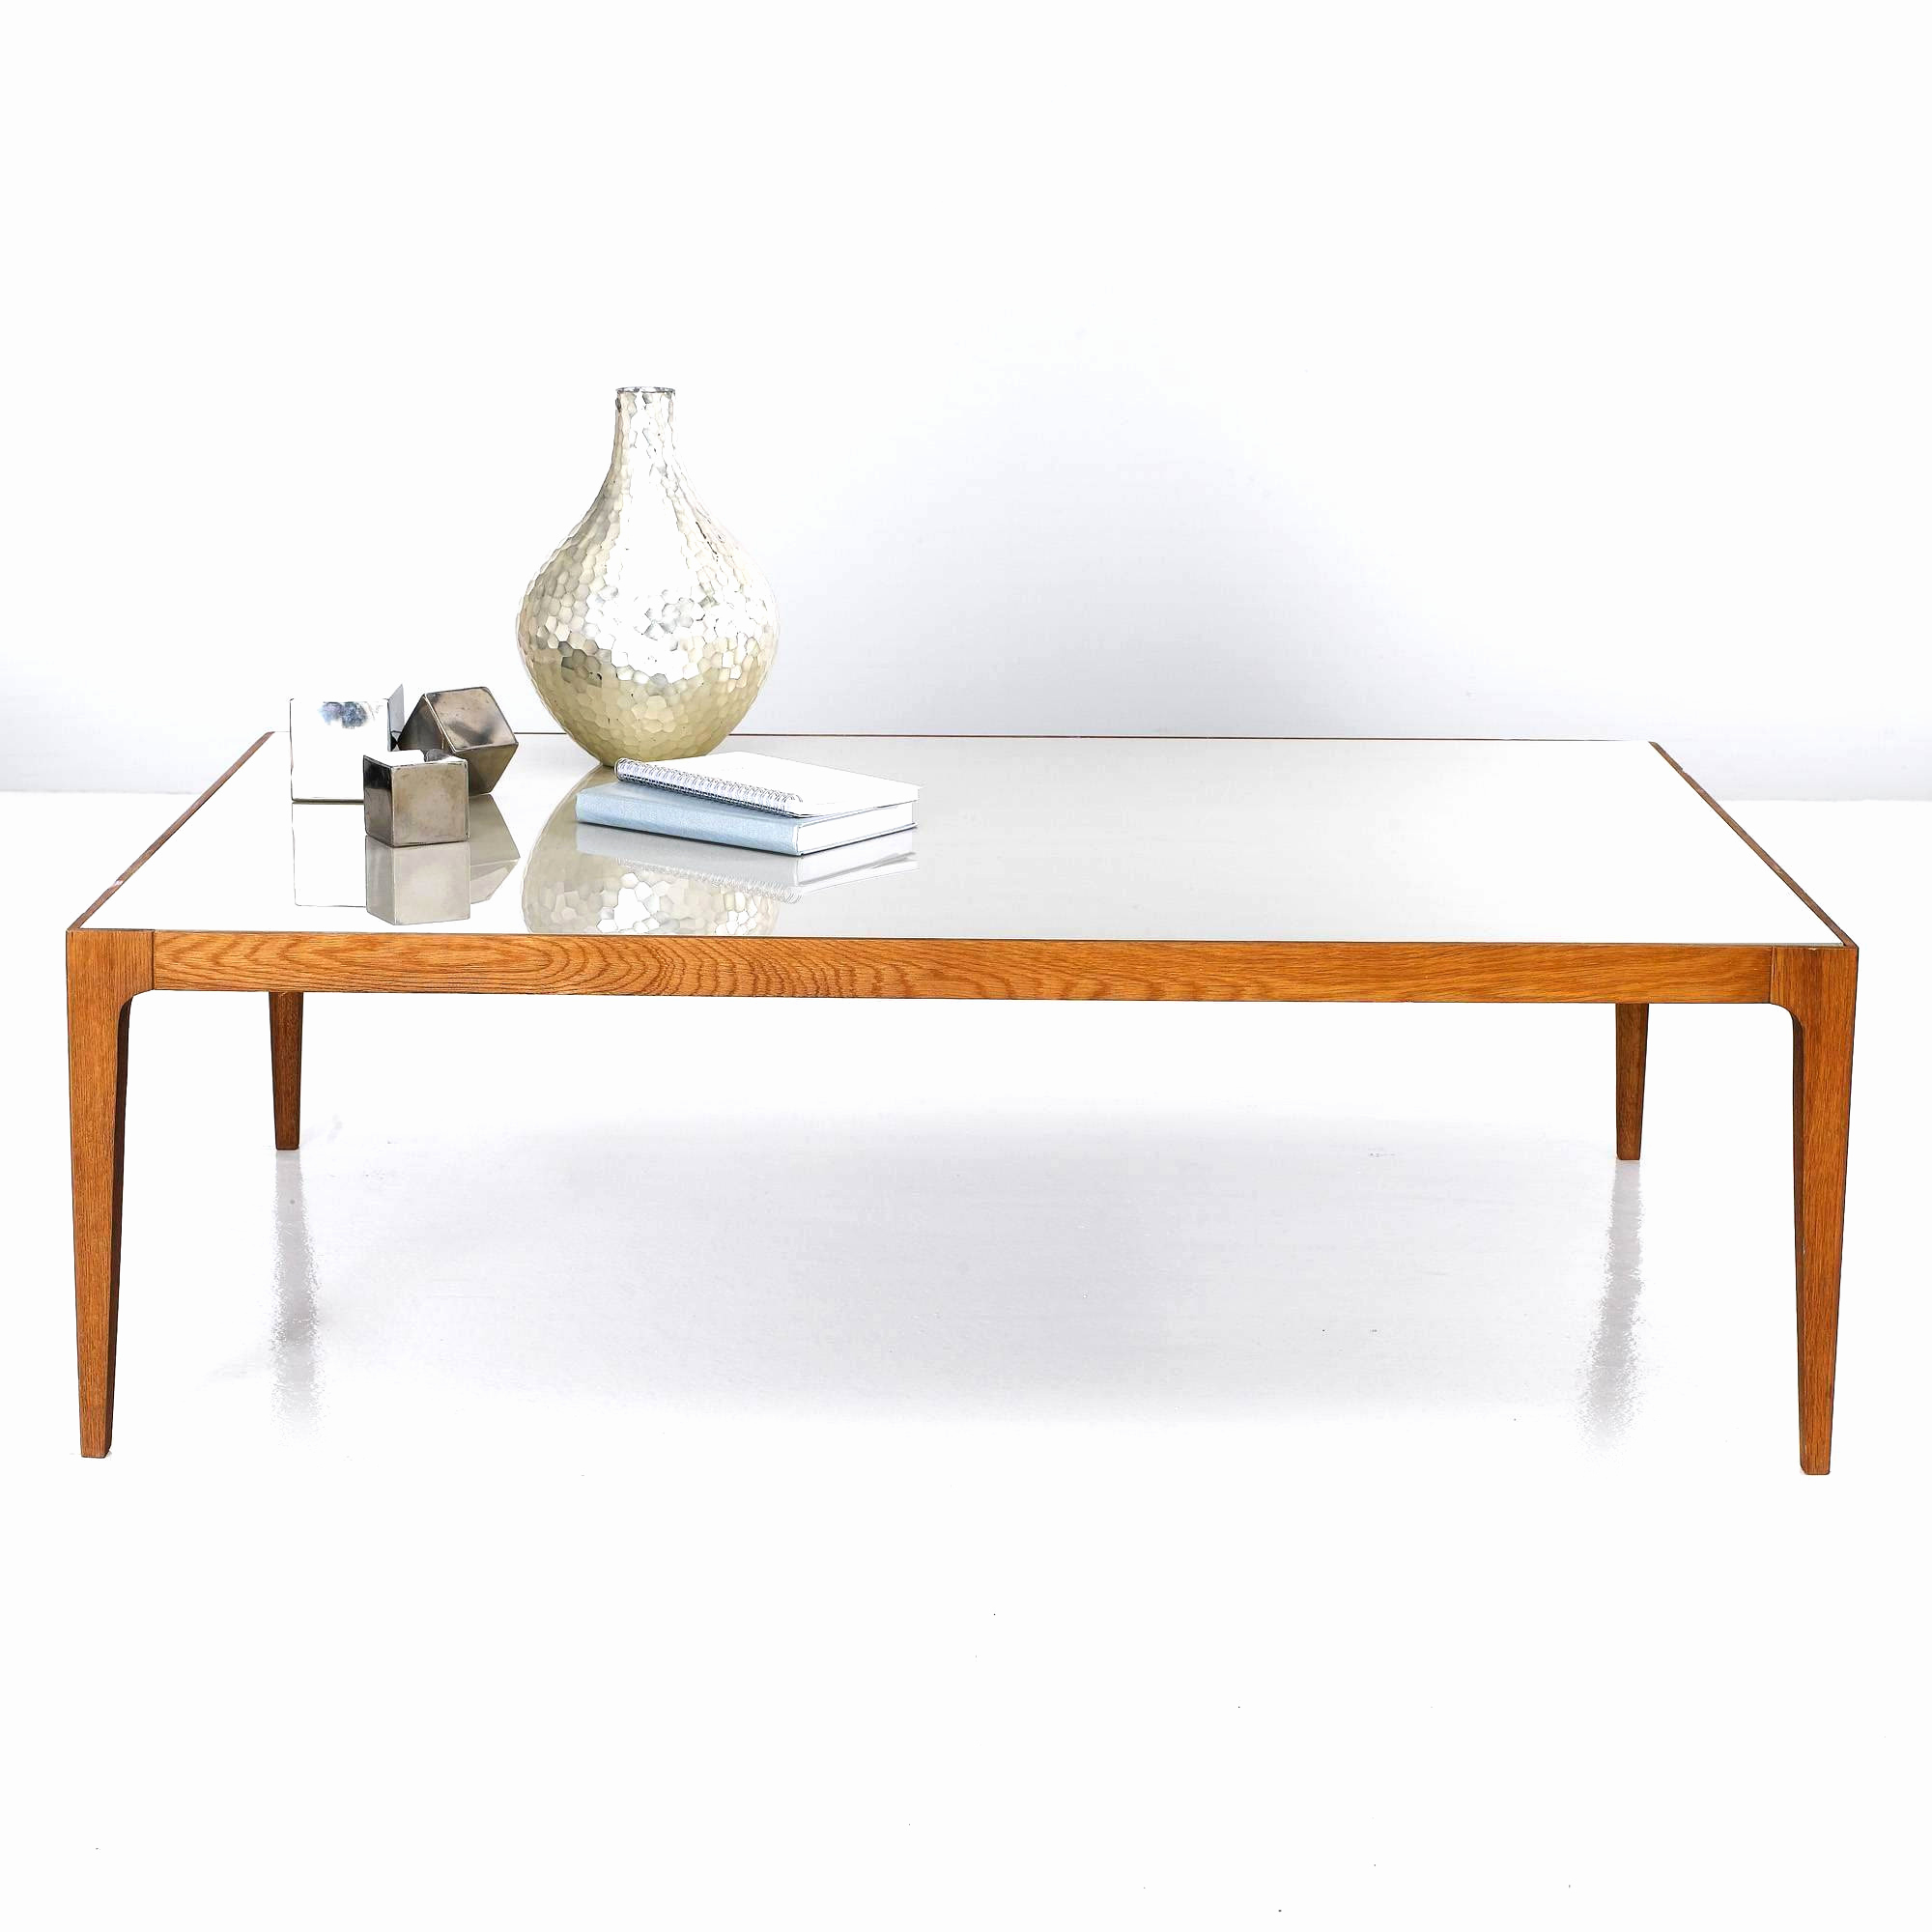 Table Basse Camif Meilleur De Collection Table Basse Marbre Design Beau Table Basse En Bois Design